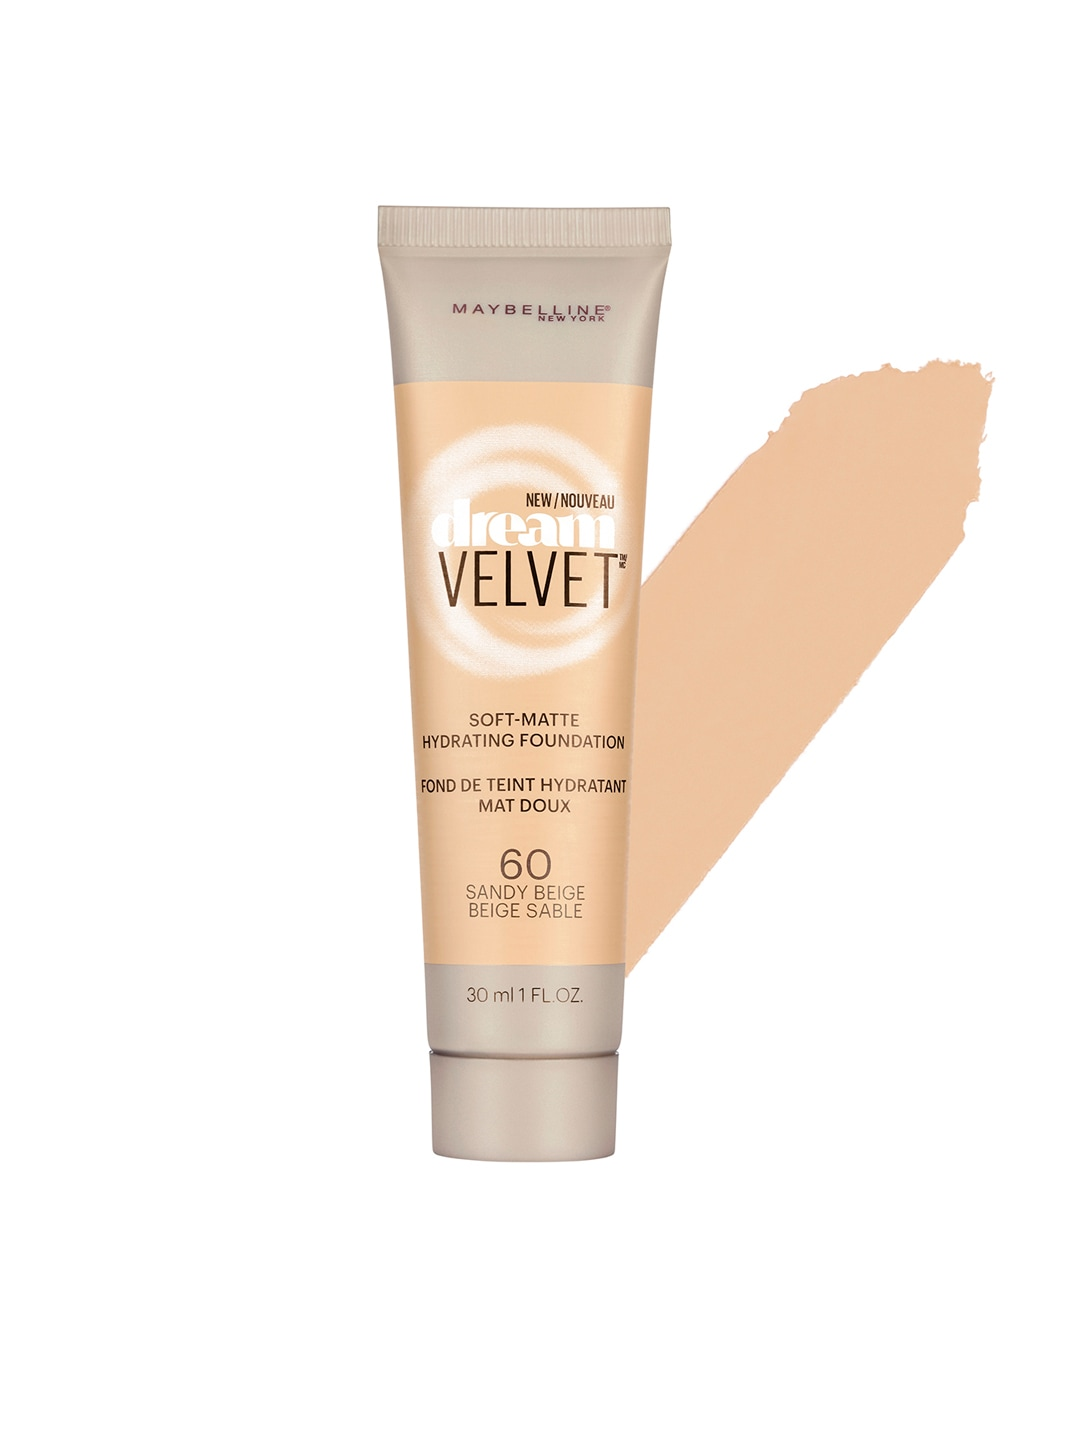 Maybelline Sandy Beige Dream Velvet Foundation 60 image